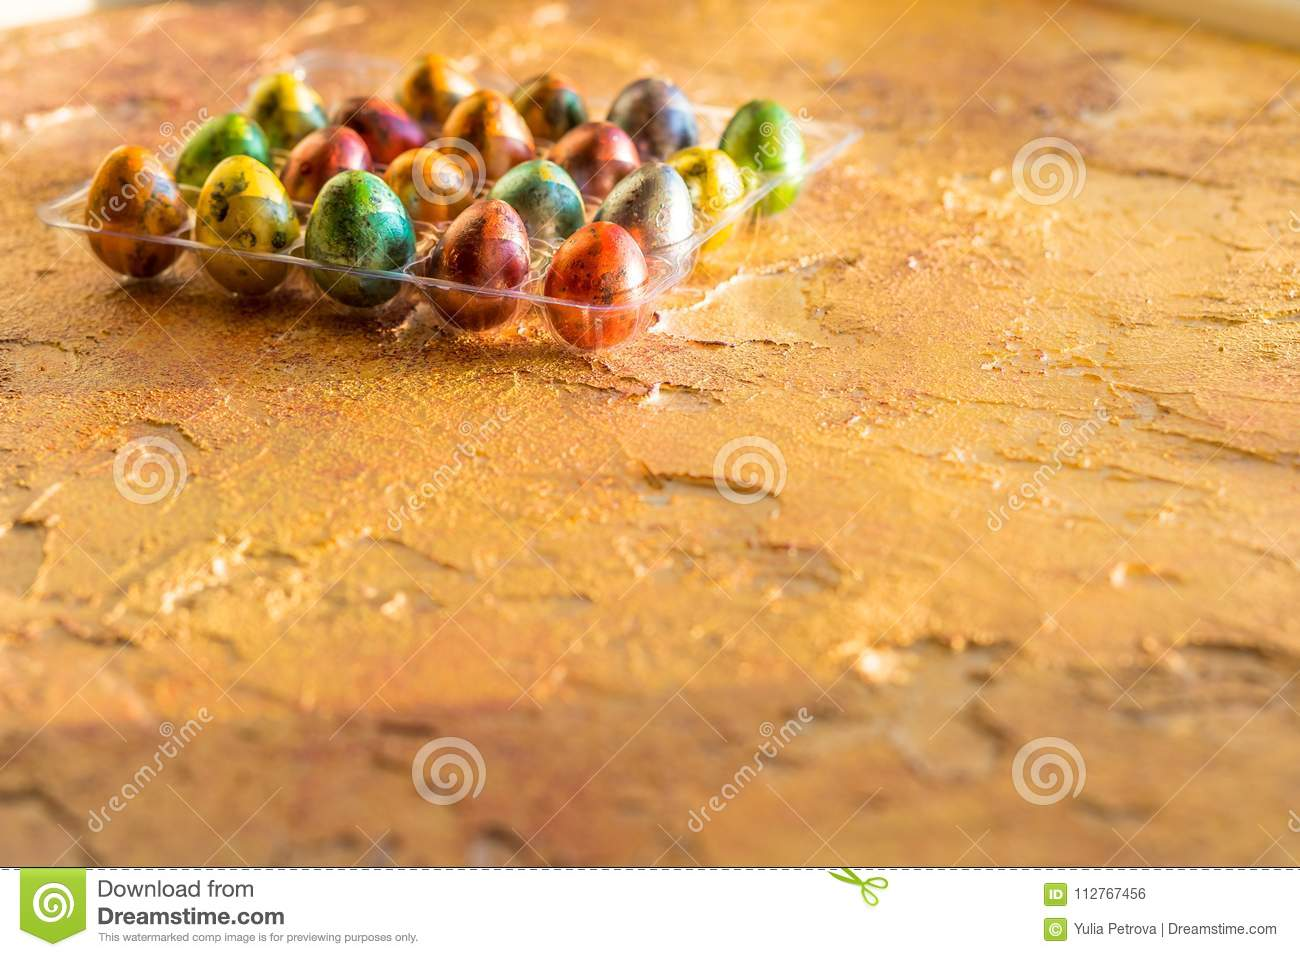 Quail egg in nest, spring, isolated on yellow.Corner of a tray of colorful eggs. Happy easter concept. Selective focus